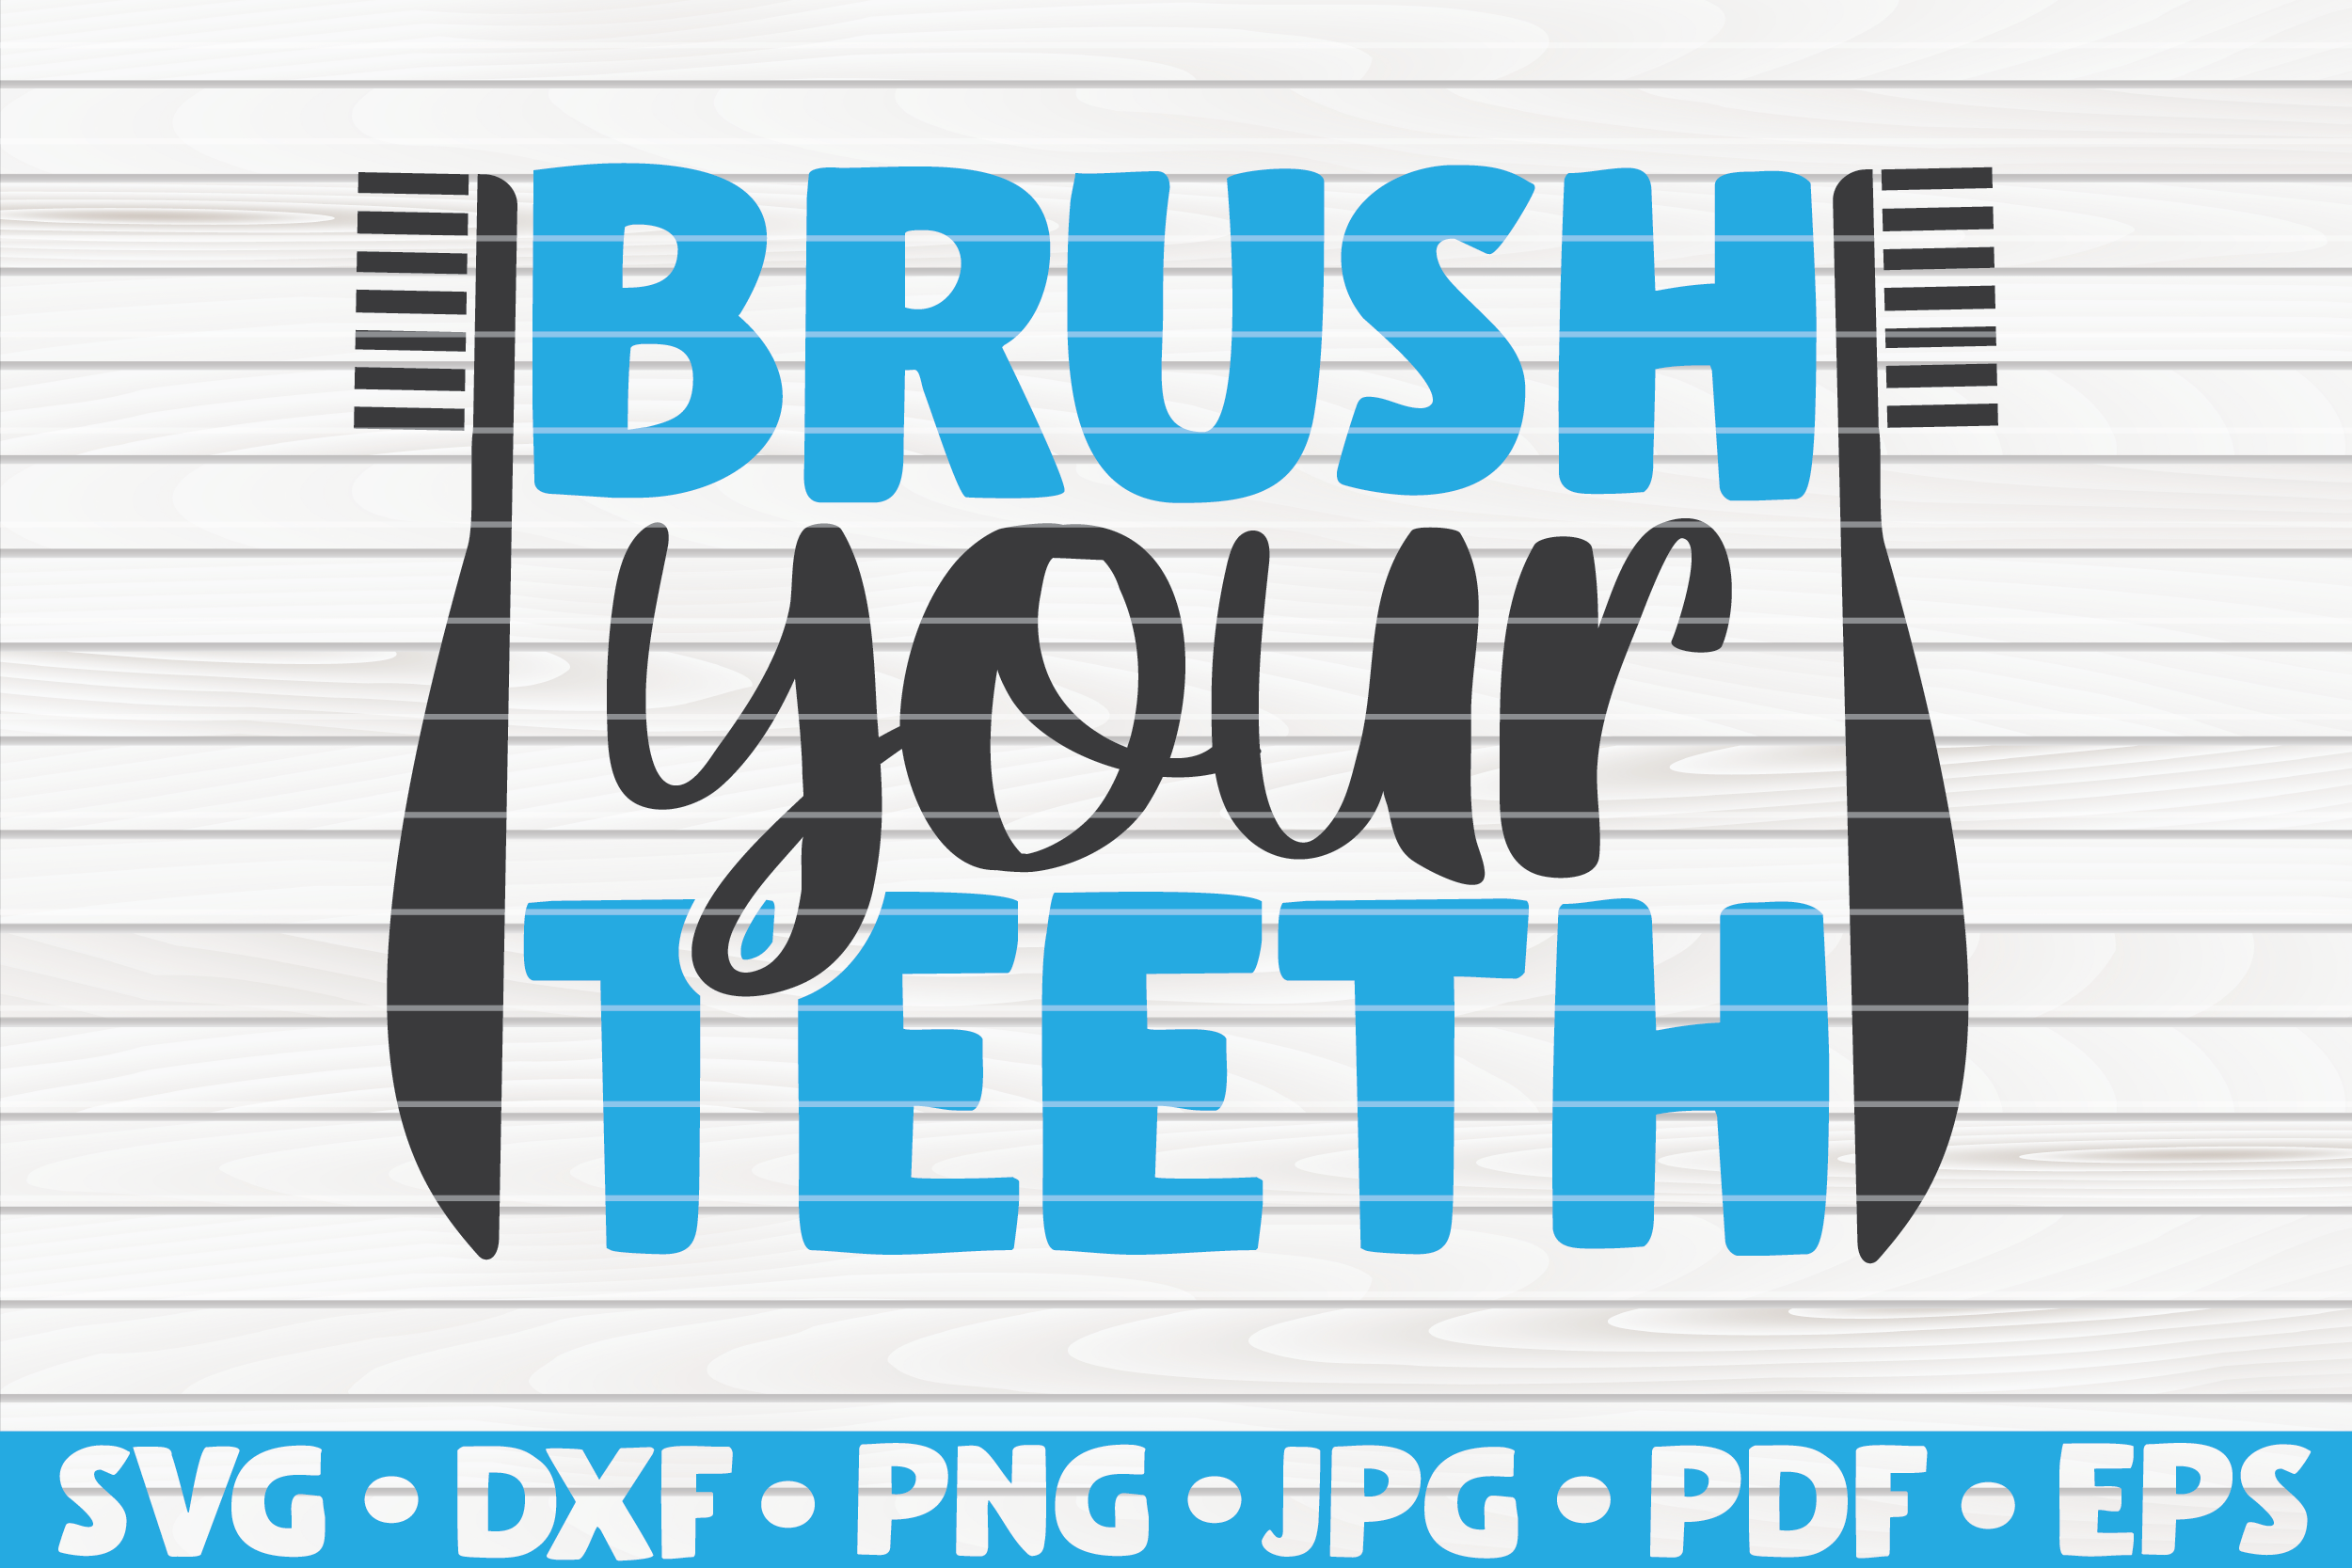 Download Free Brush Your Teeth Graphic By Mihaibadea95 Creative Fabrica for Cricut Explore, Silhouette and other cutting machines.